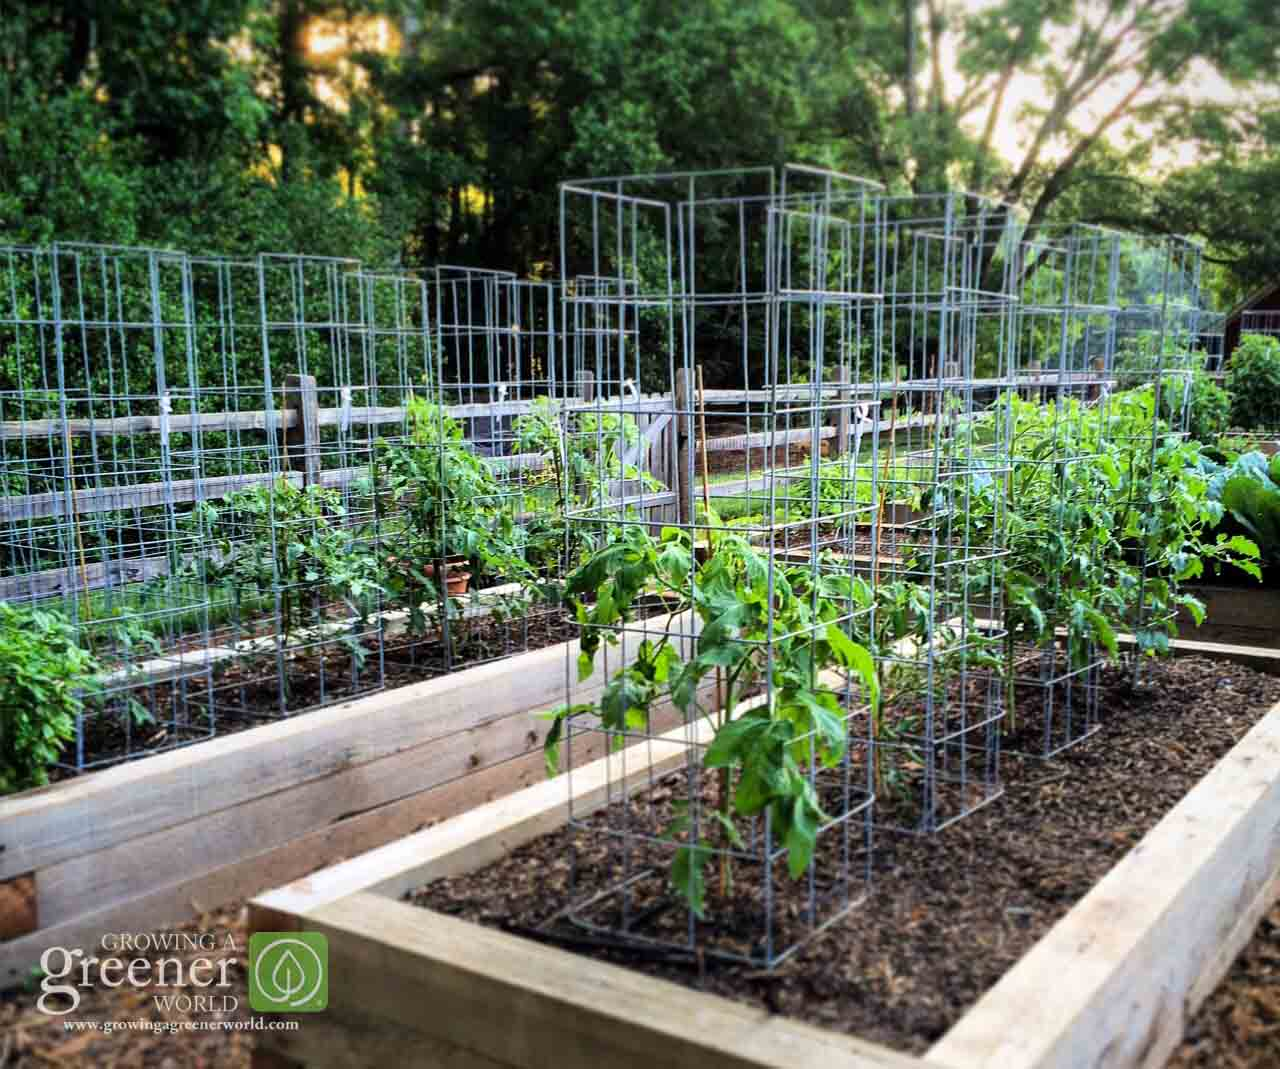 Make the Ultimate Tomato Cage - GrowingAGreenerWorld com